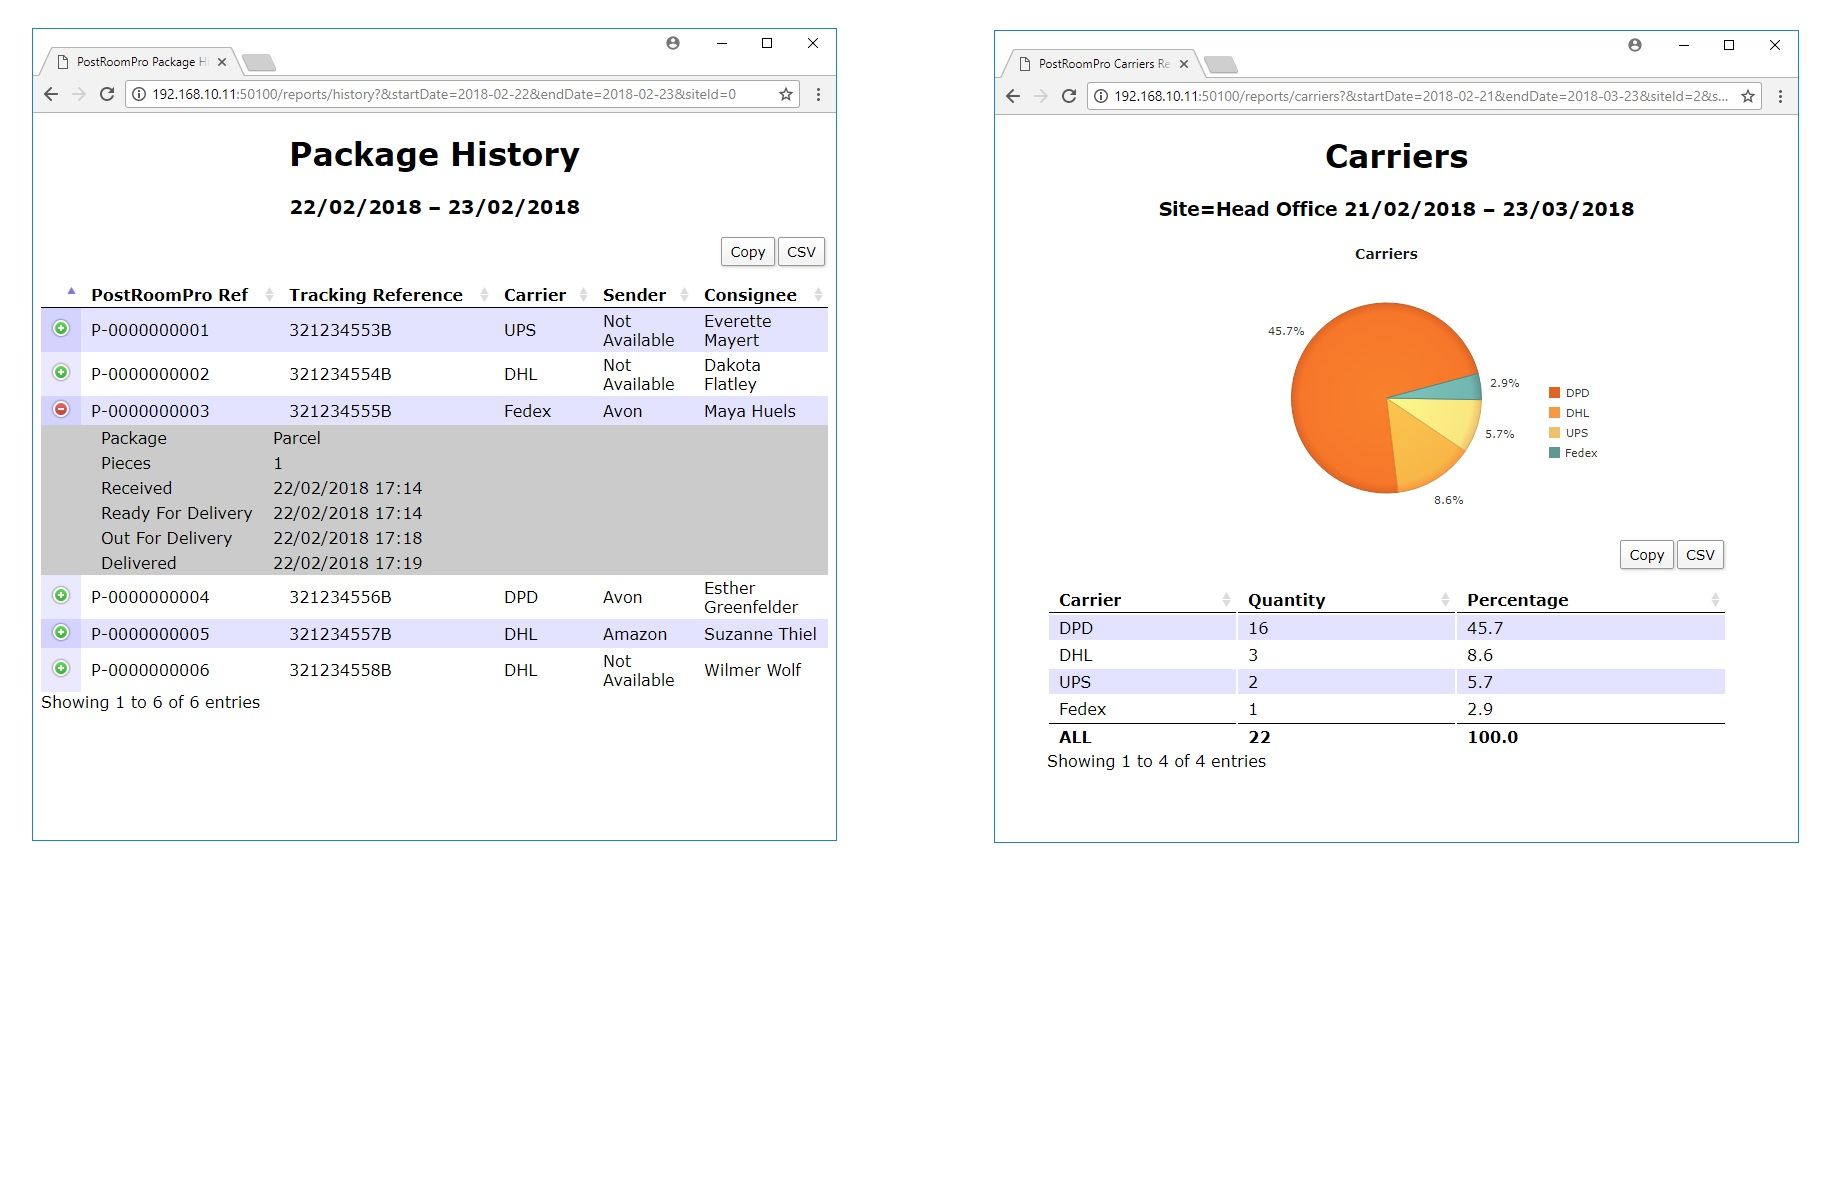 PostRoomPro mail room tracking web based management reporting